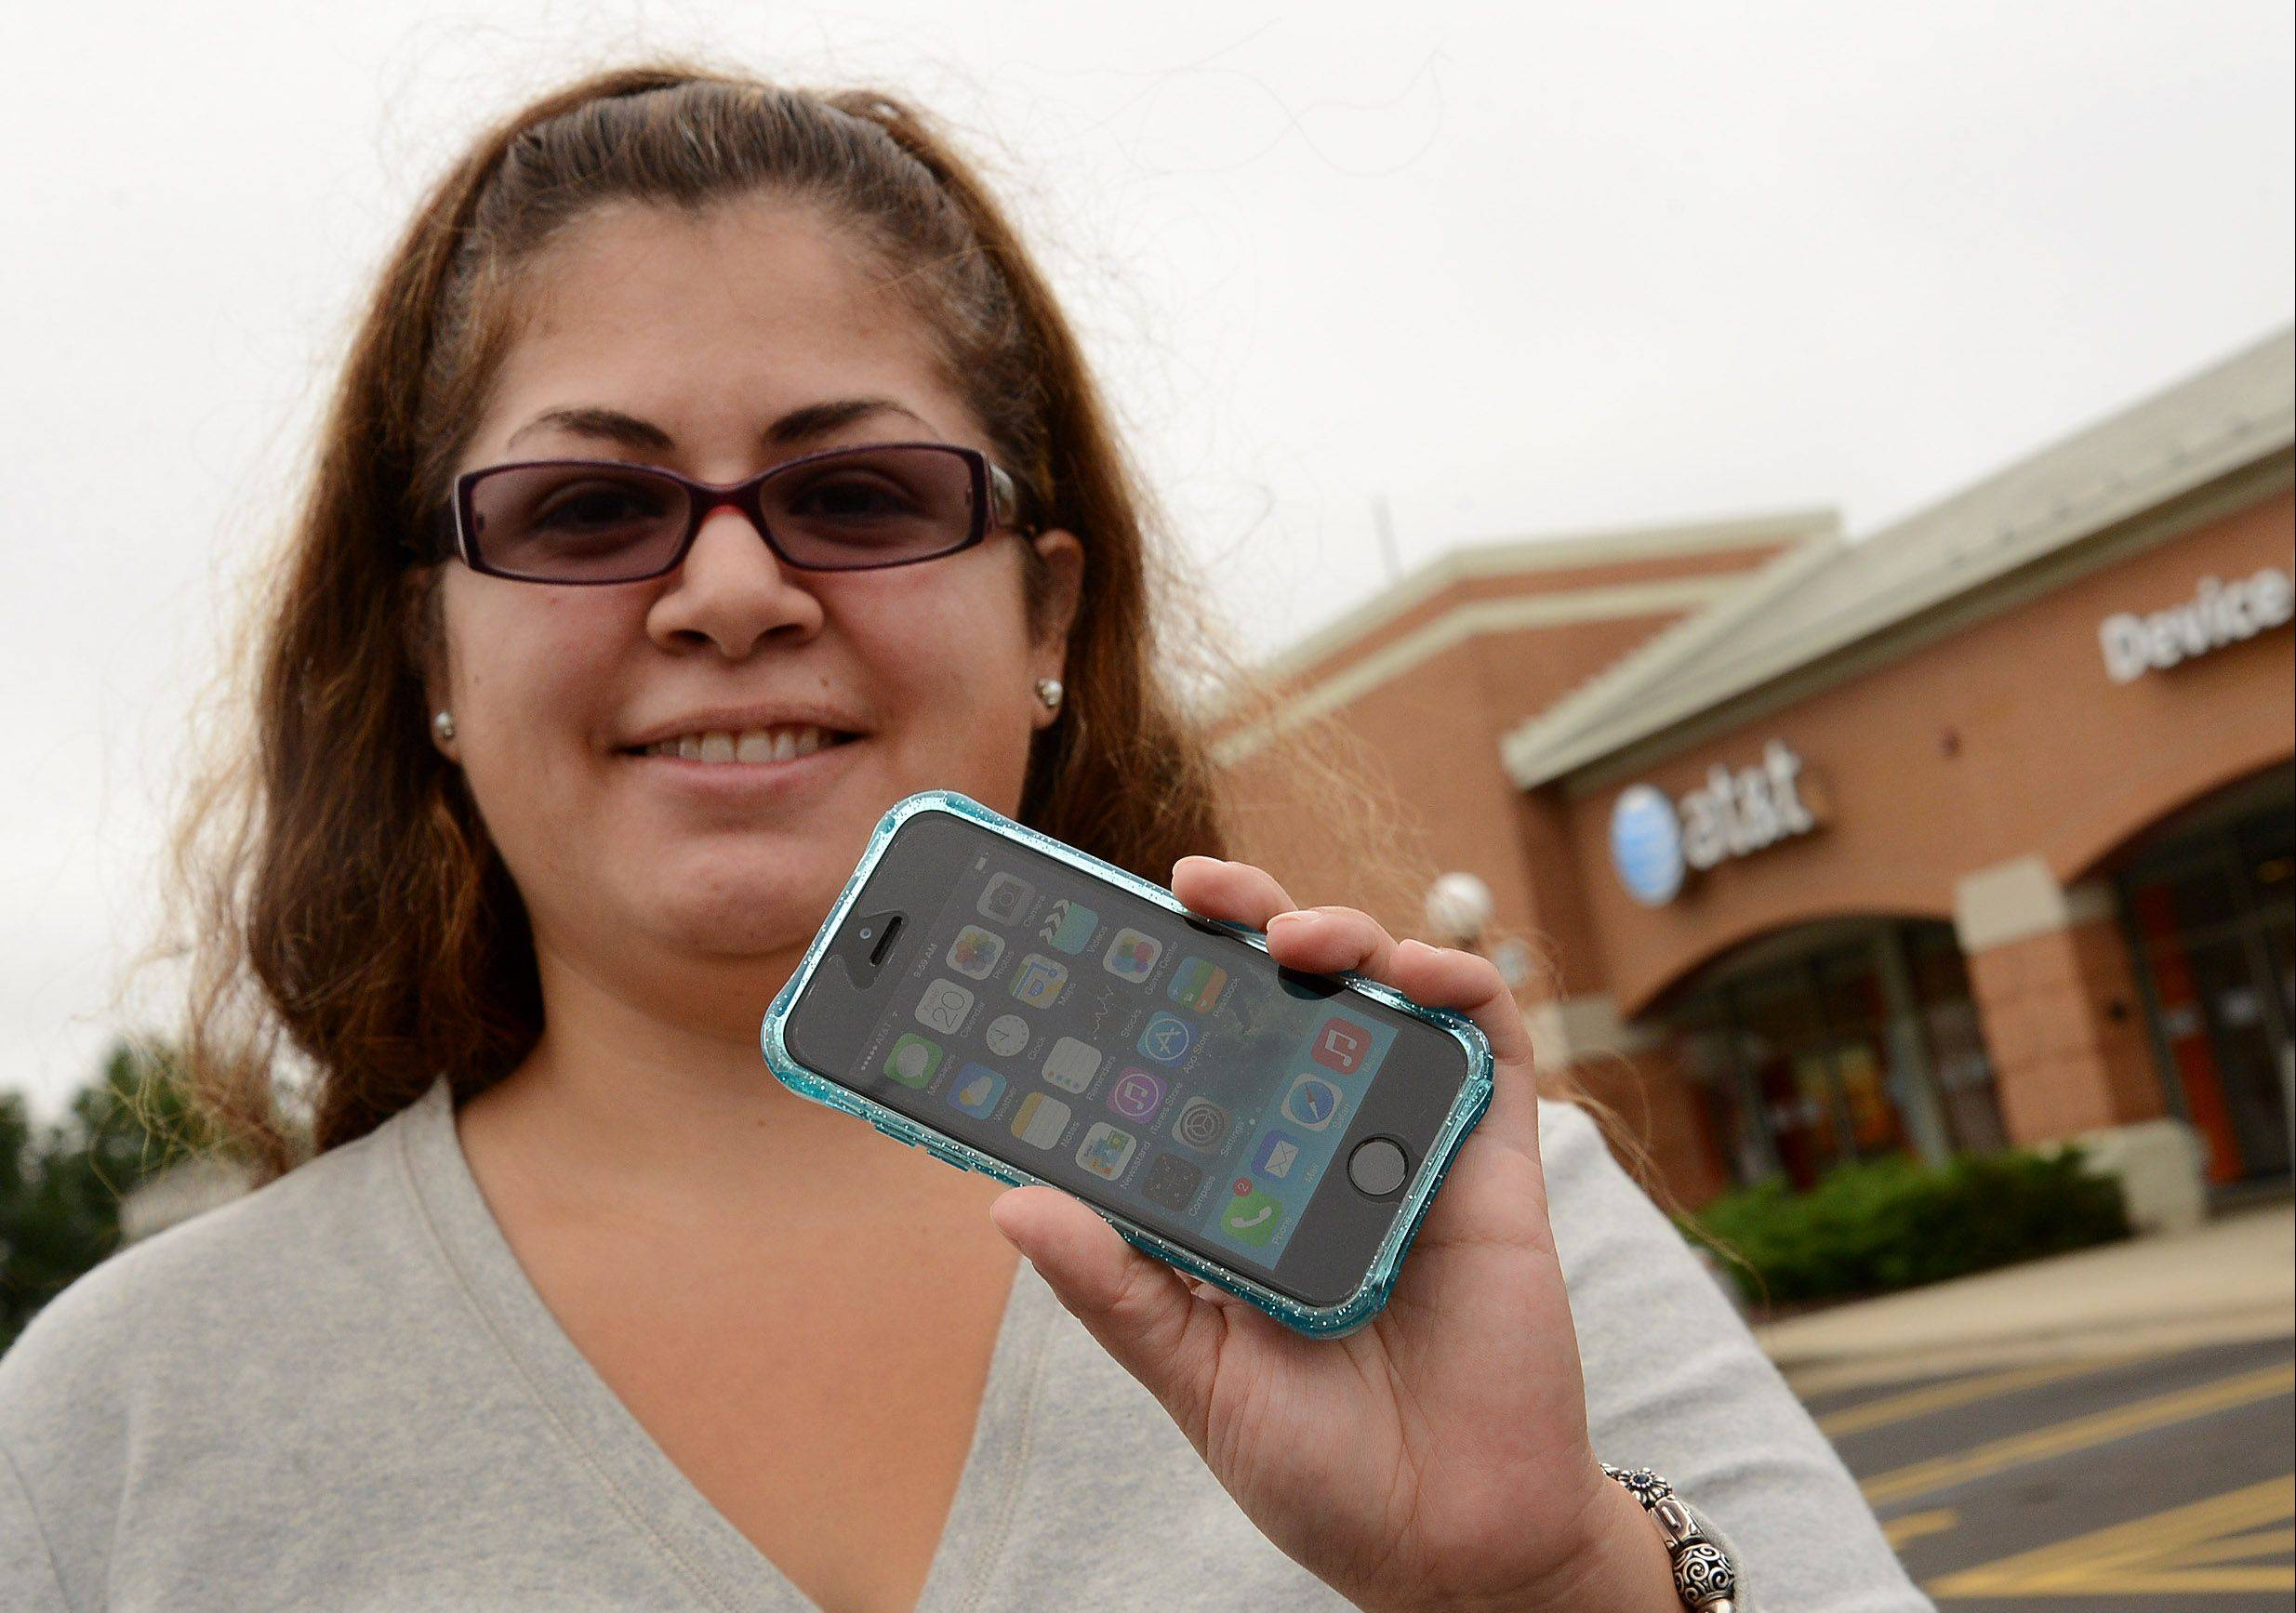 Jenny Beltran of Hoffman Estates purchased her new iPhone 5 s at the ATT store in Schaumburg, after breaking her old one she owned for four years.